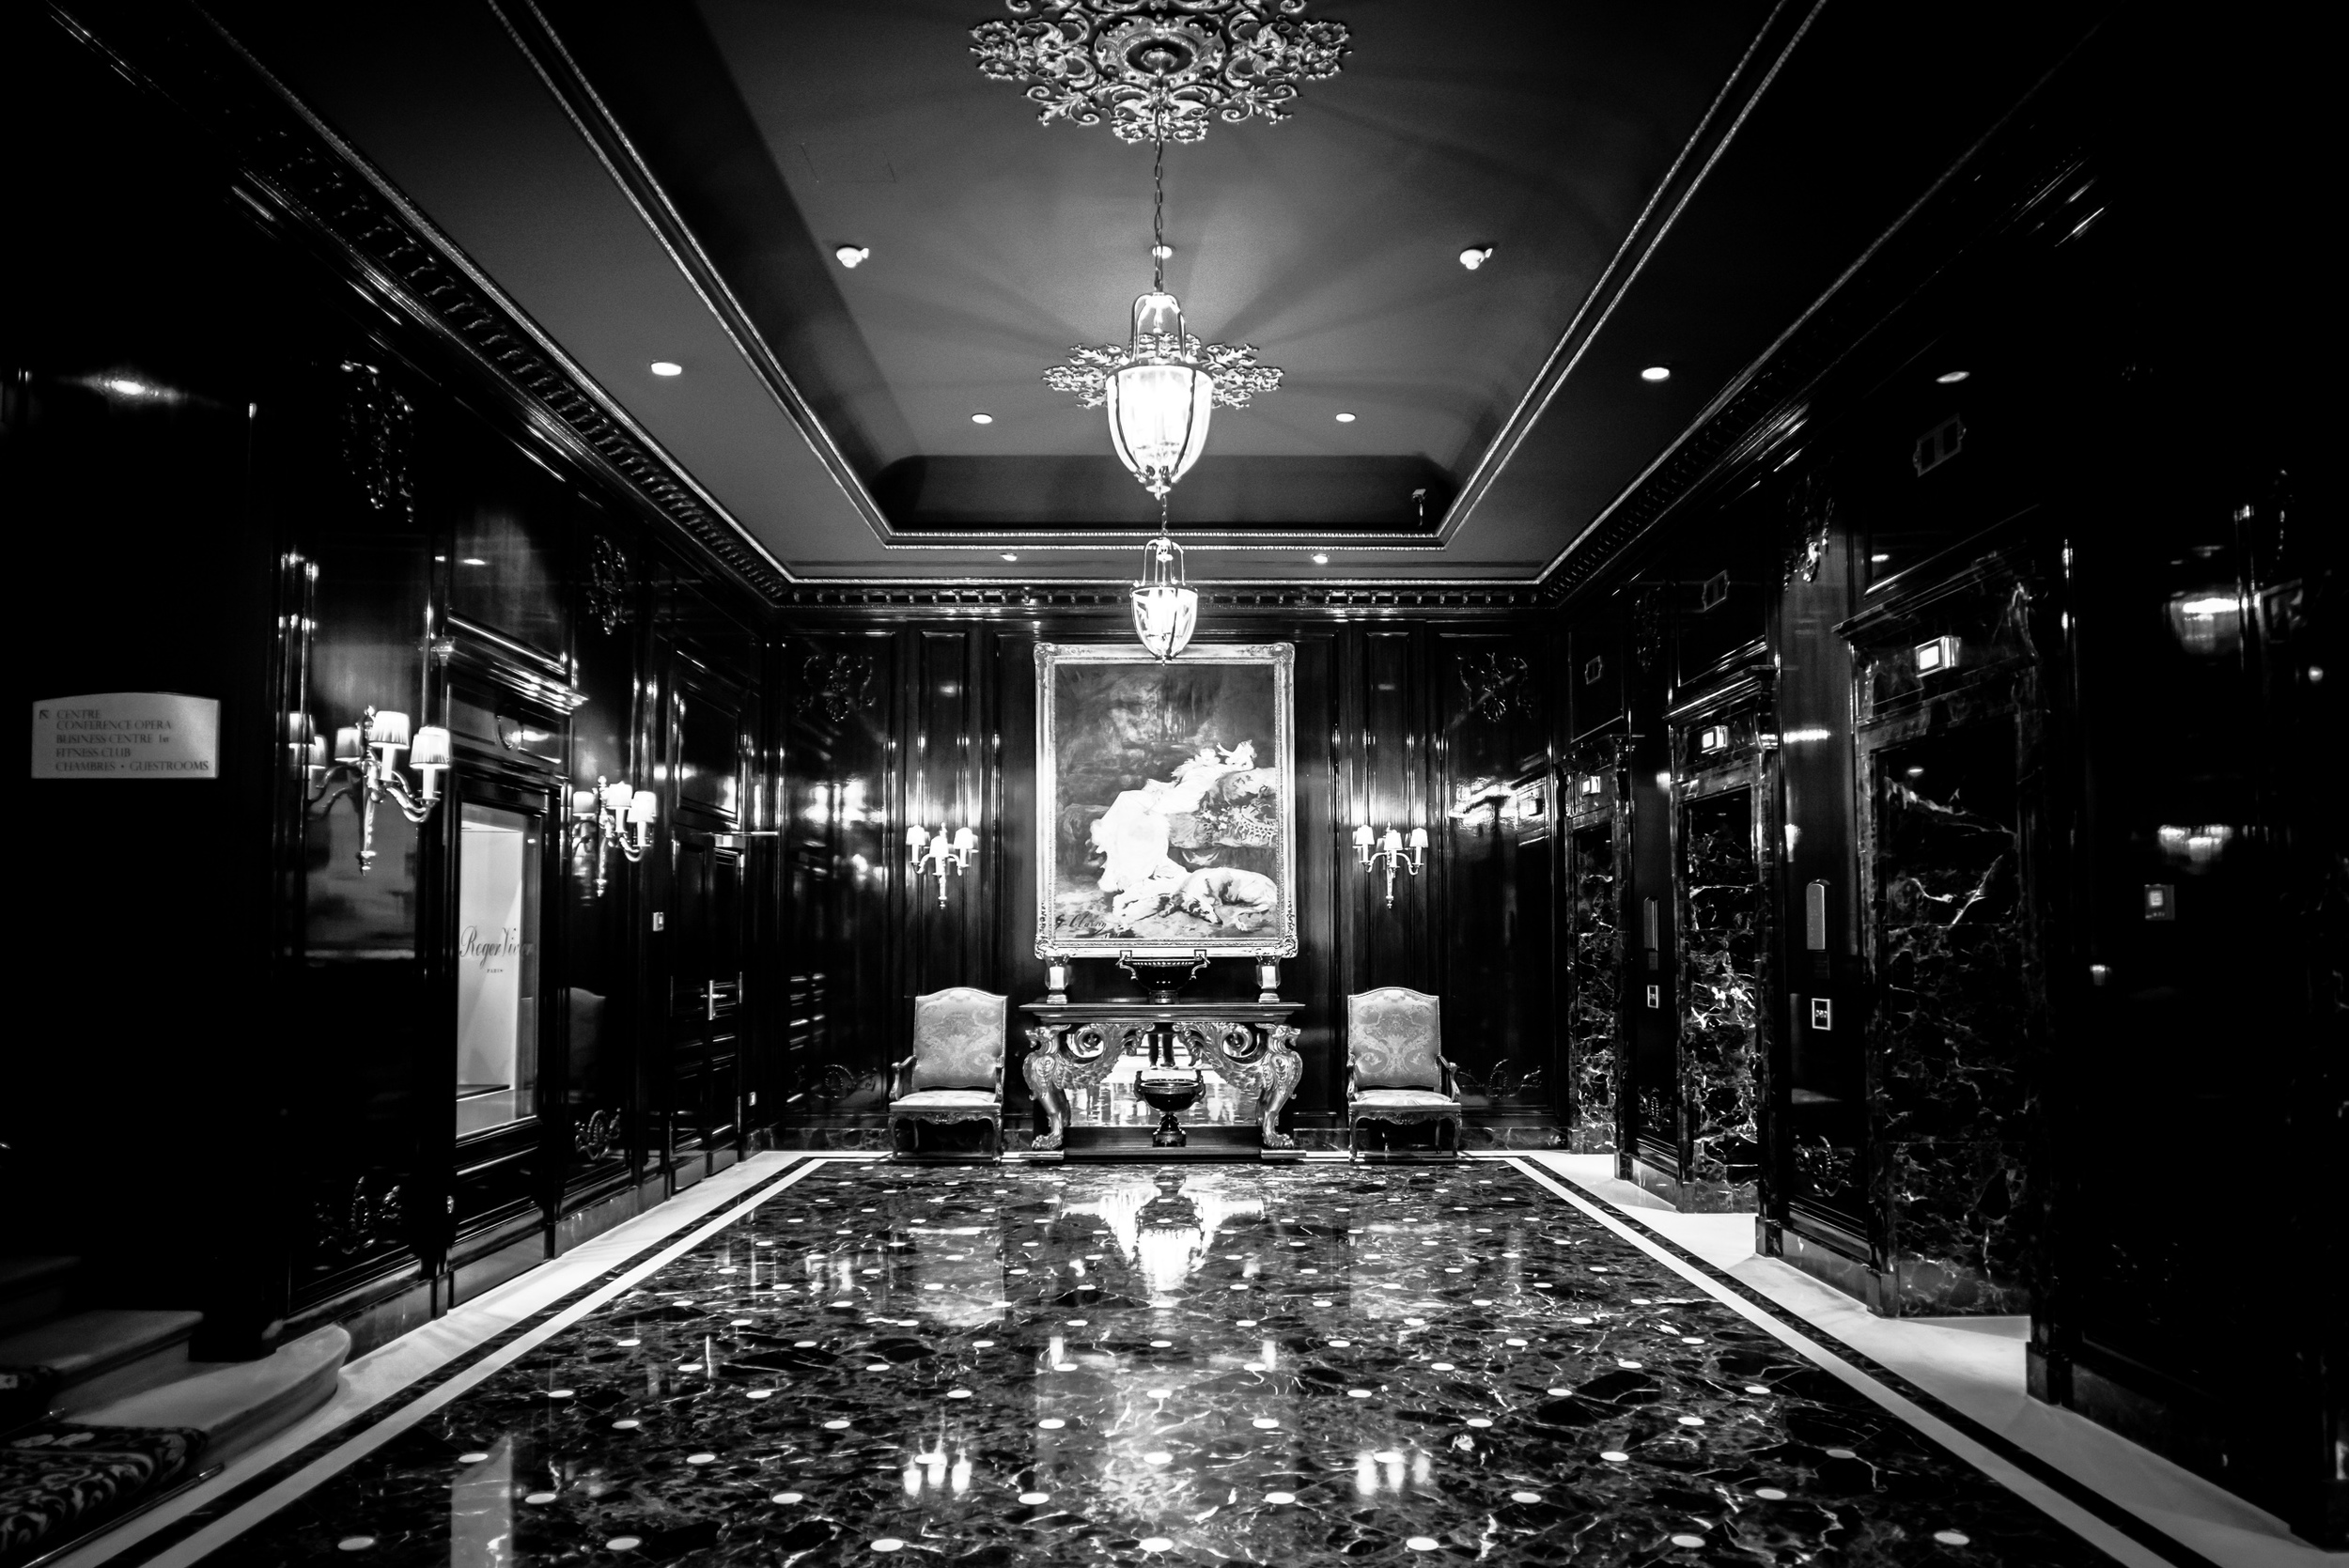 Elevator area of Paris Le Grand (this area was really stunning)